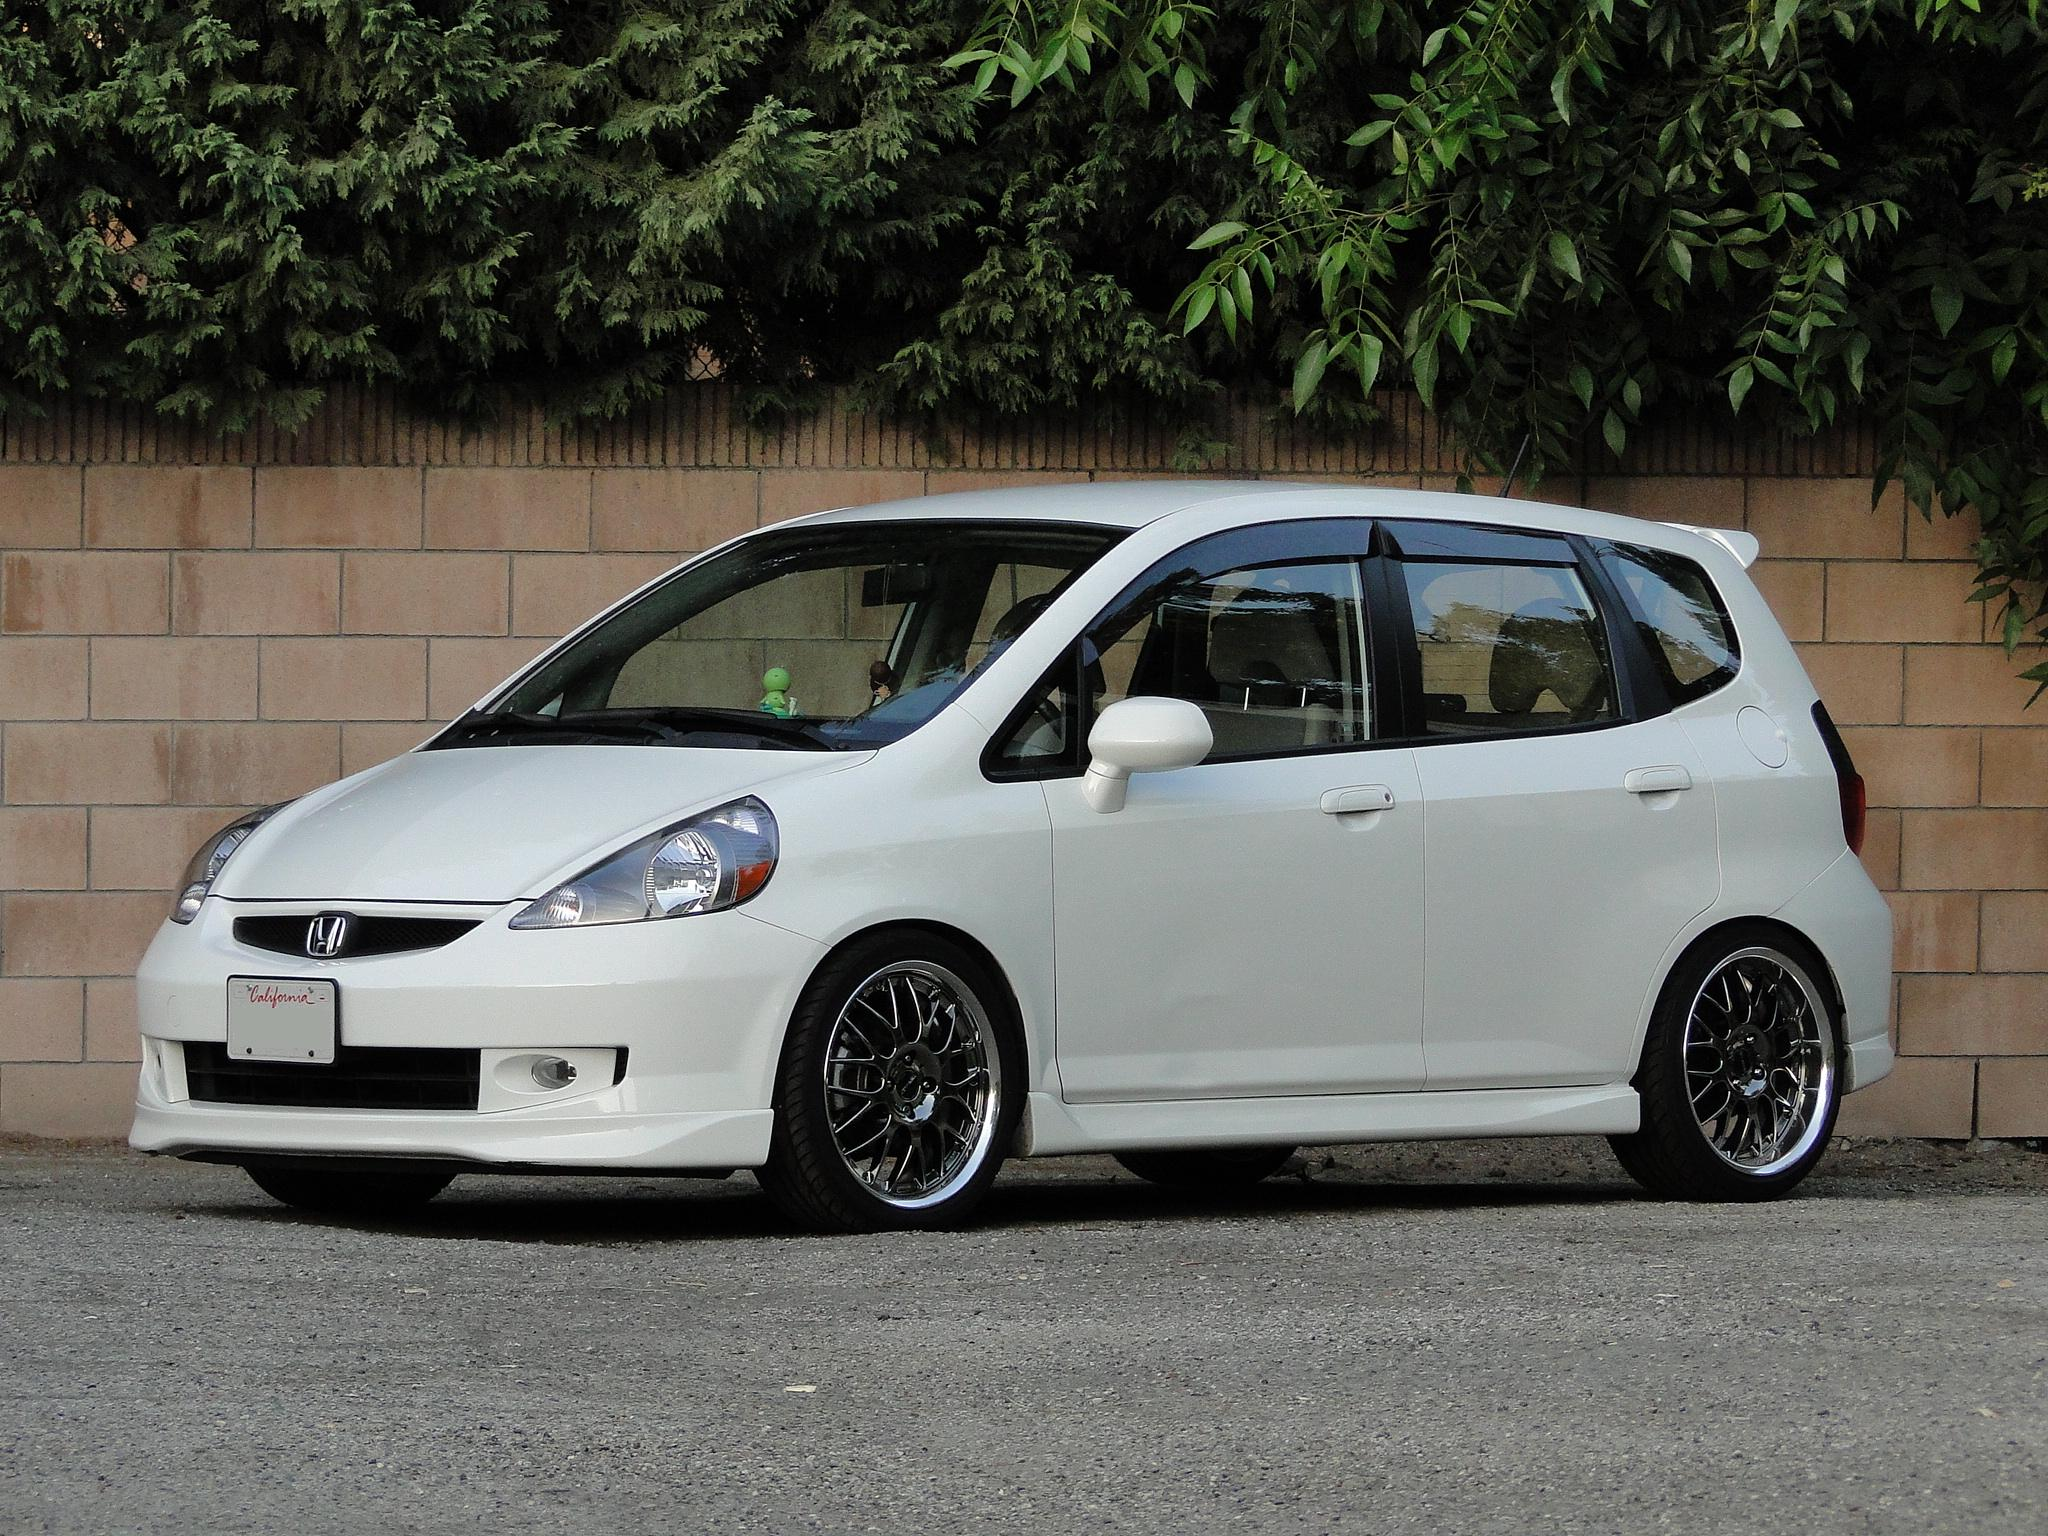 Honda Fit Custom Wheels Work Termist Tm 1 Reloaded 17x7 0 Et 35 Tire Size 205 40 R17 17x8 0